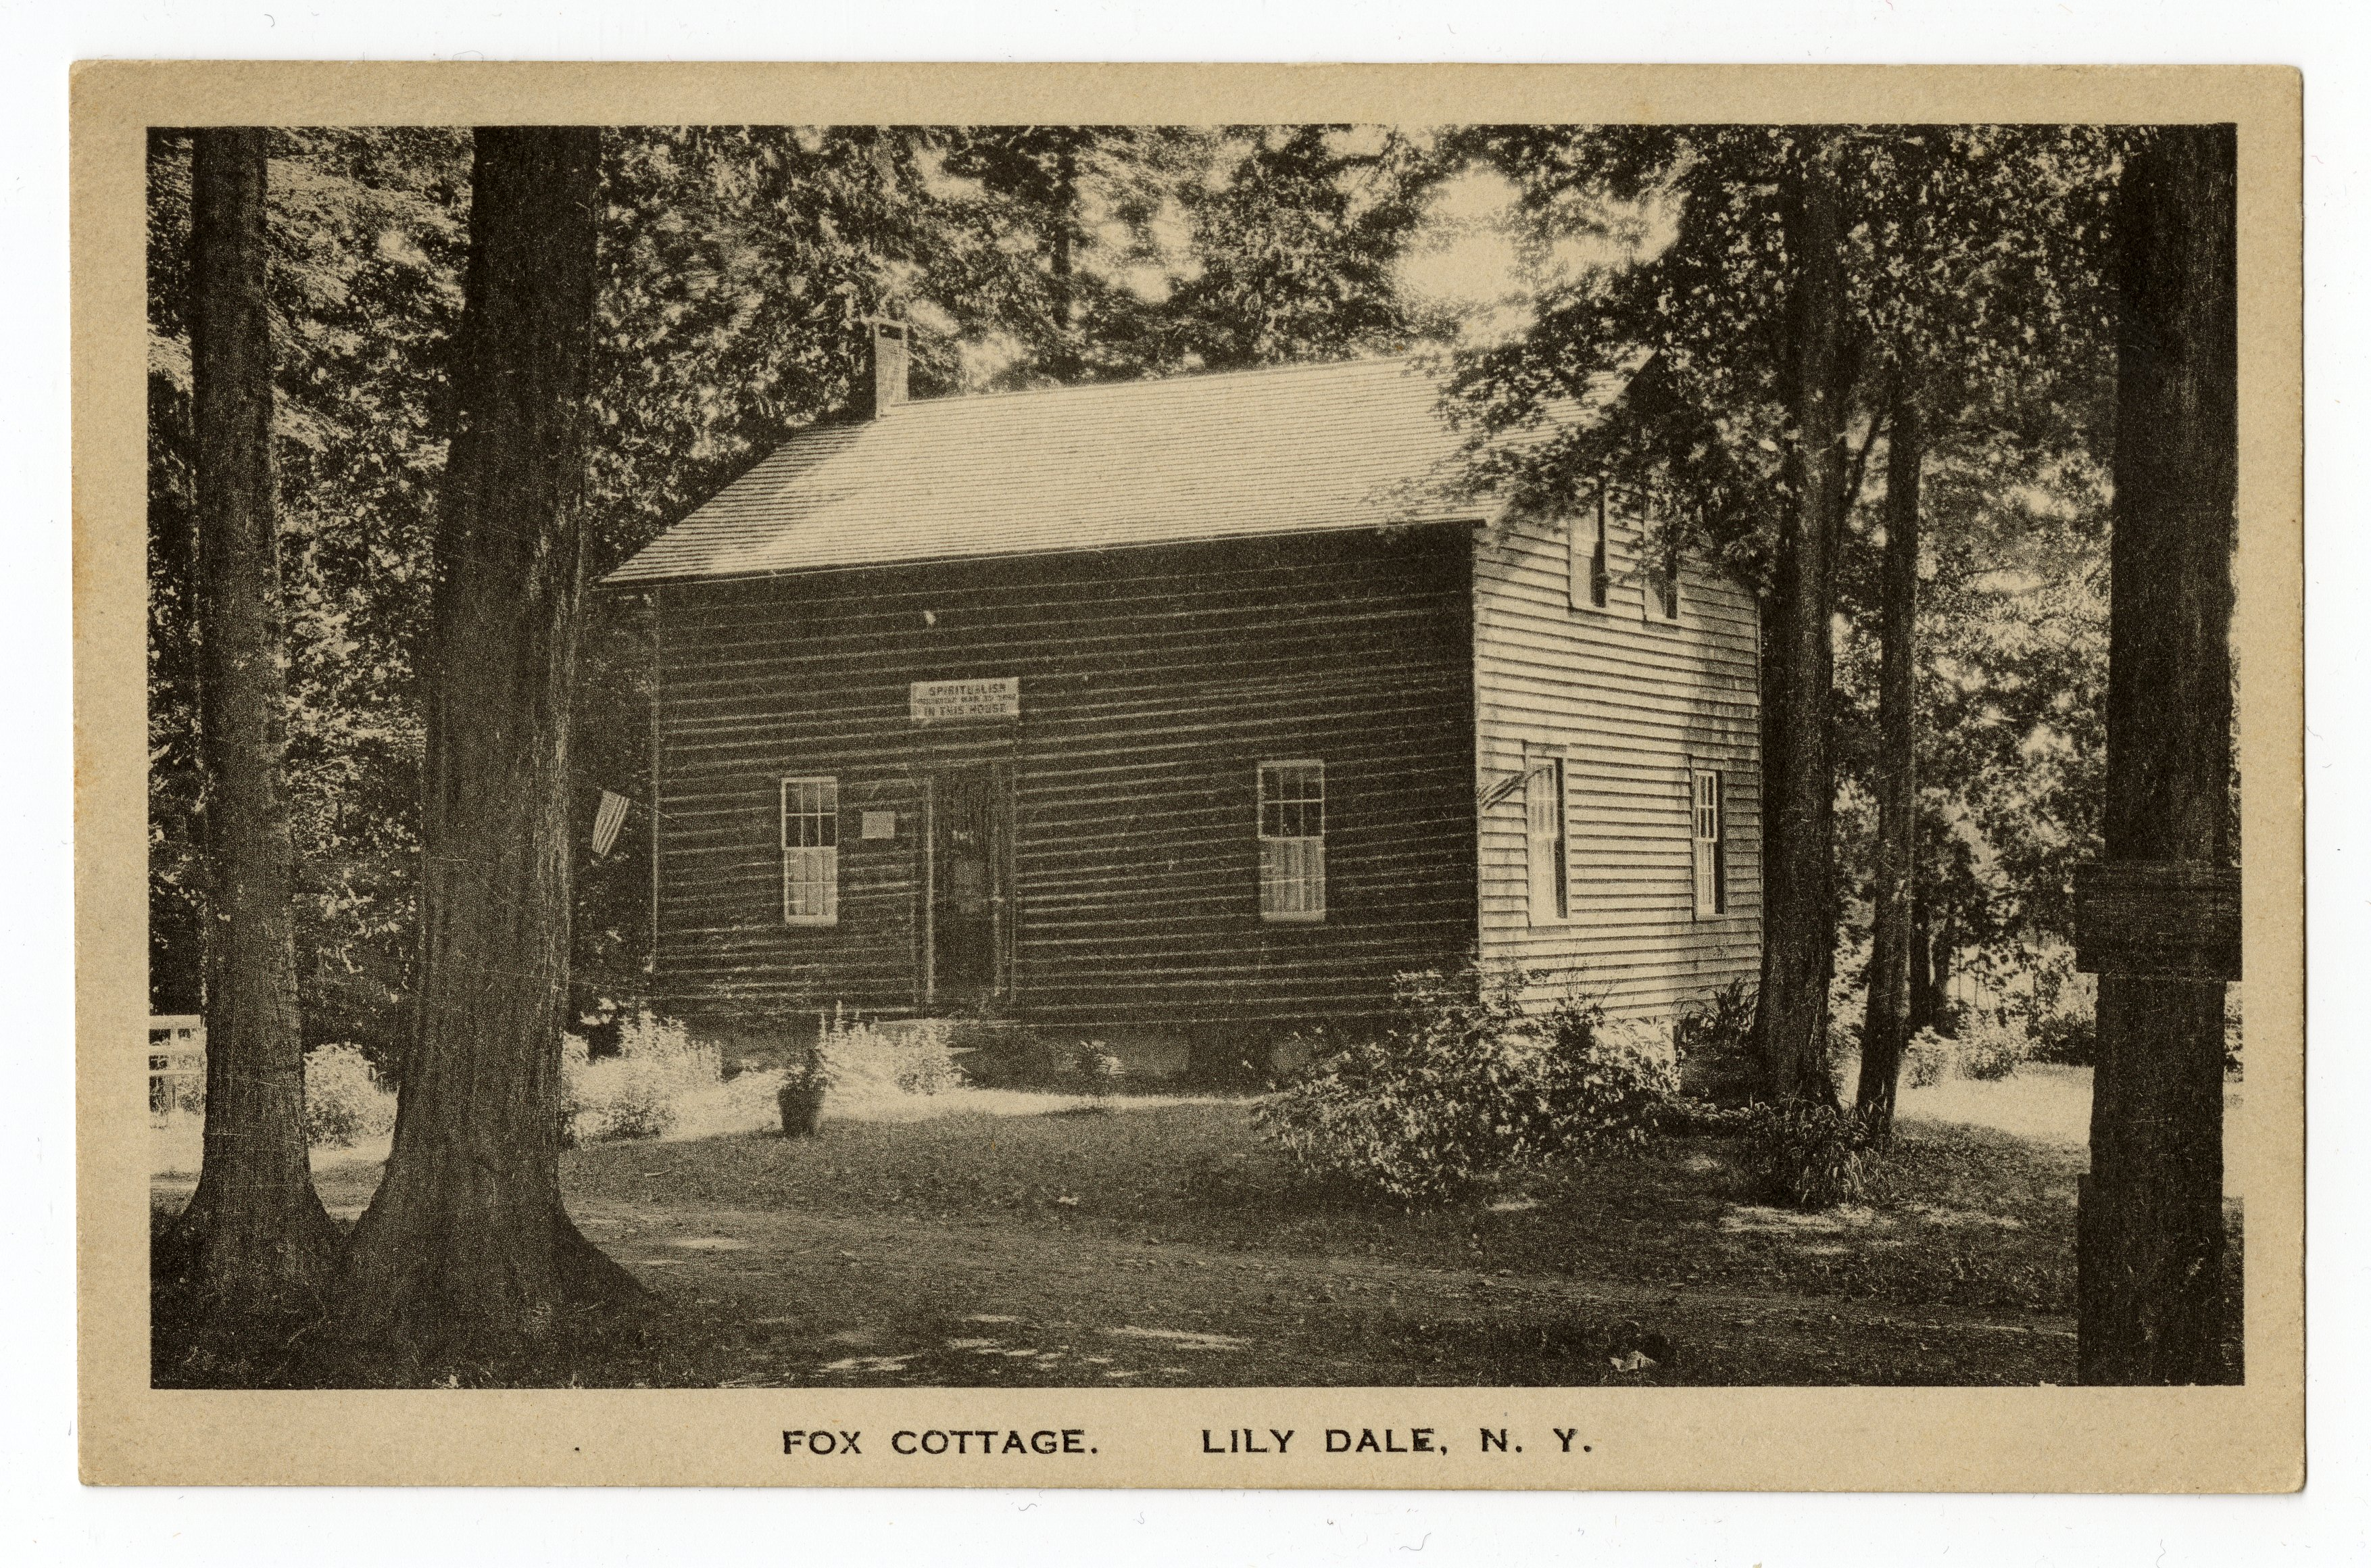 postcard image of a small cottage in the woods; hand-colored photograph